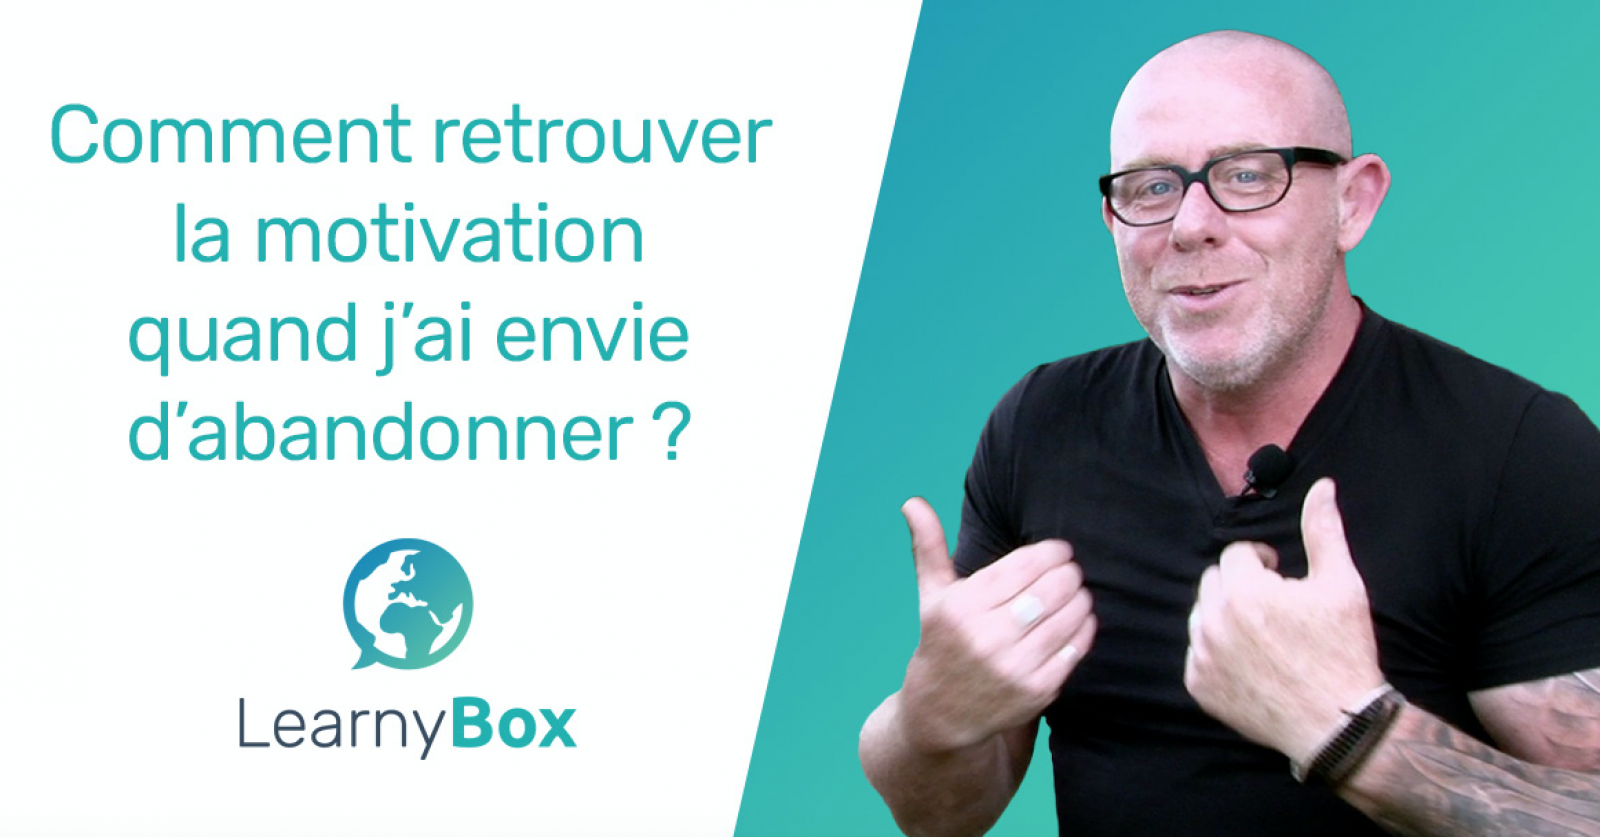 [Interview] Comment retrouver la motivation quand j'ai envie d'abandonner ?